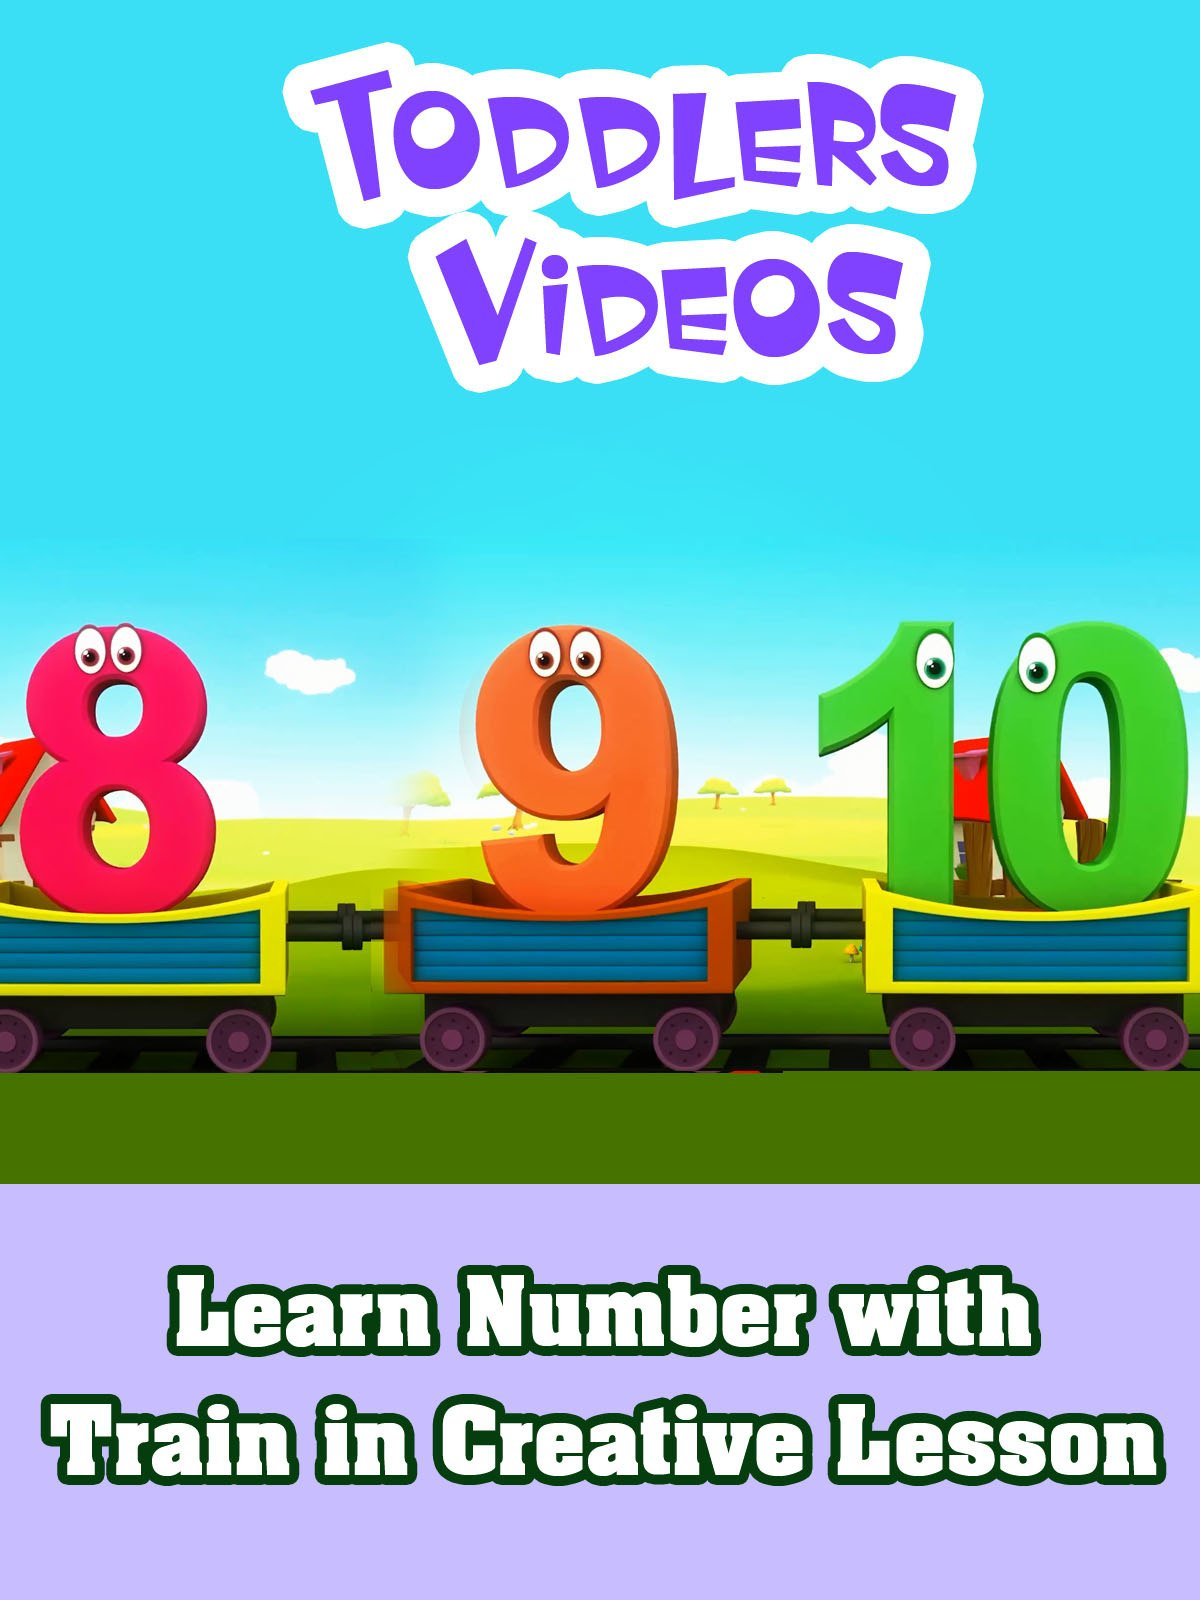 Learn Number with Train in Creative Lesson